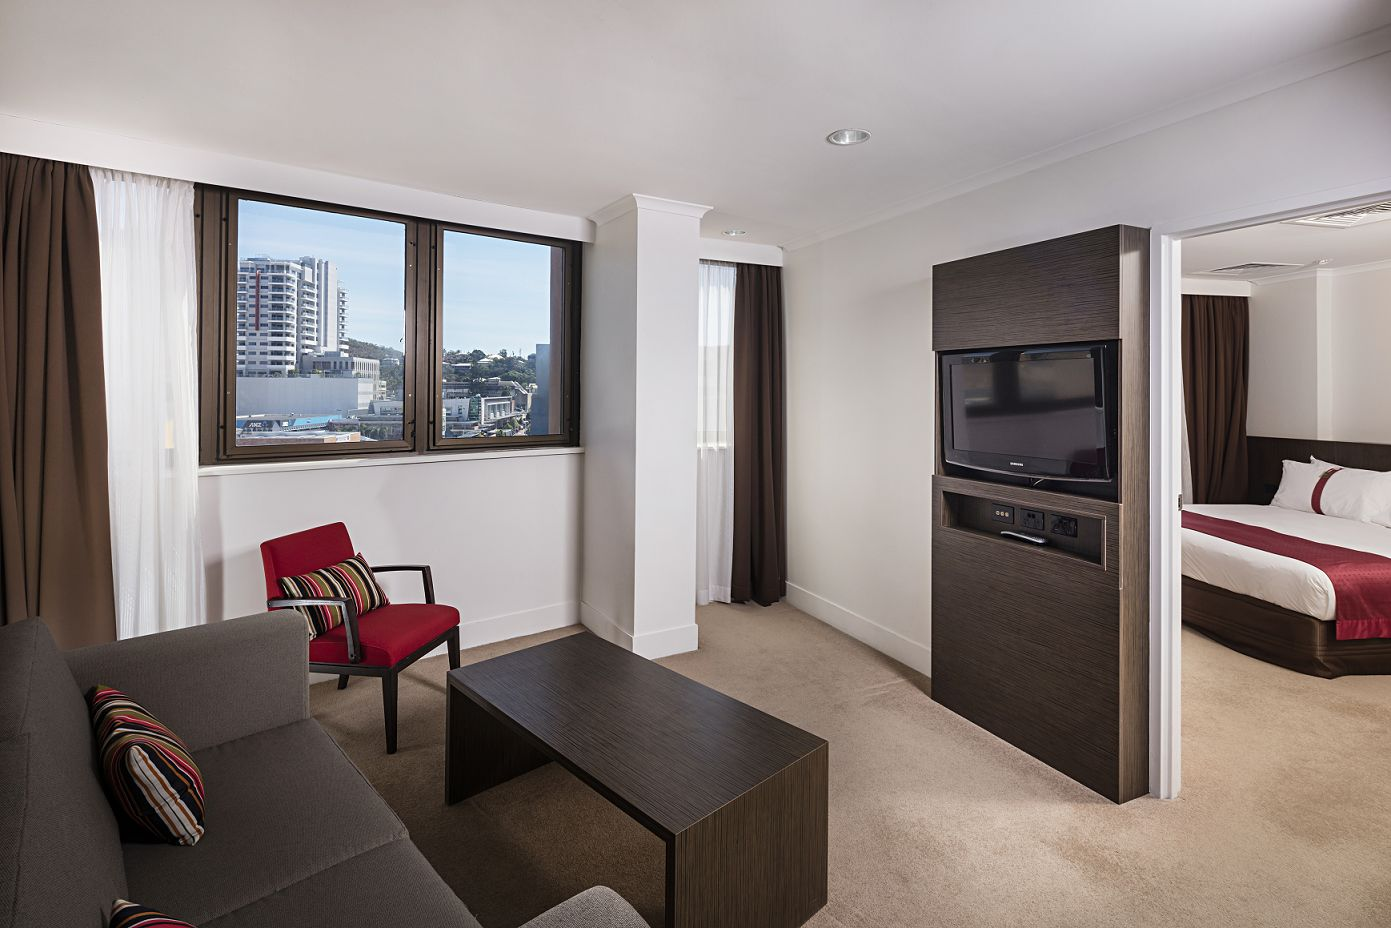 Hotel Grand Chancellor Townsville, City